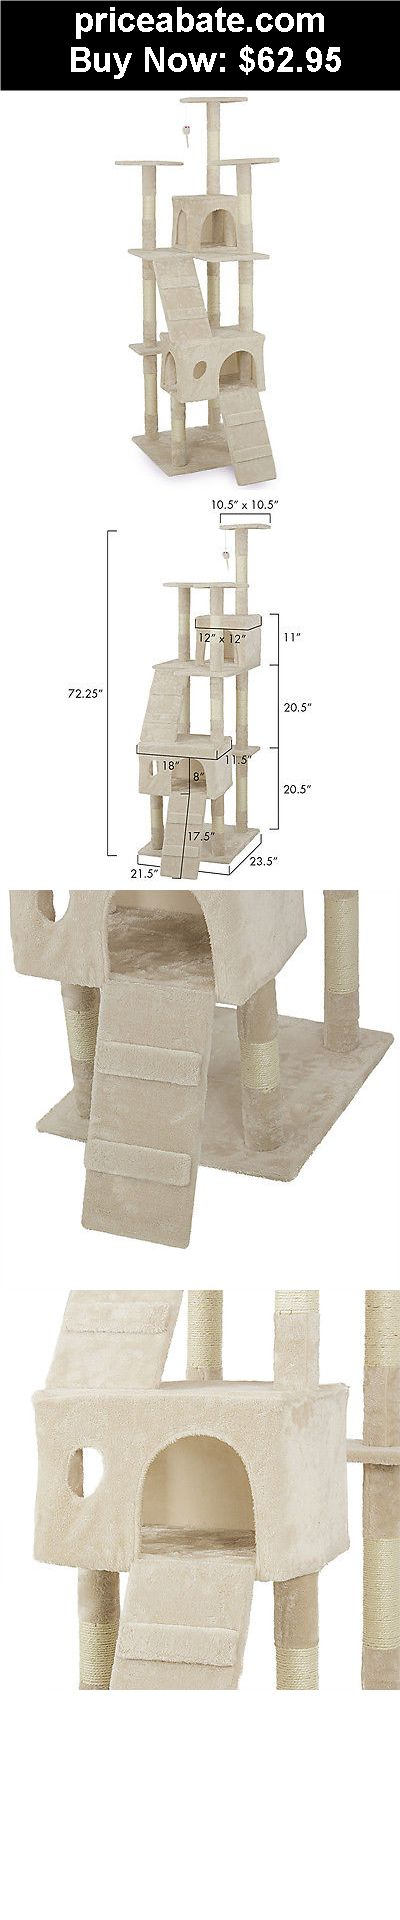 """Animals-Cats: New 72"""" Cat Tree Scratcher Play House Condo Furniture Toy Bed Post Pet House - BUY IT NOW ONLY $62.95"""